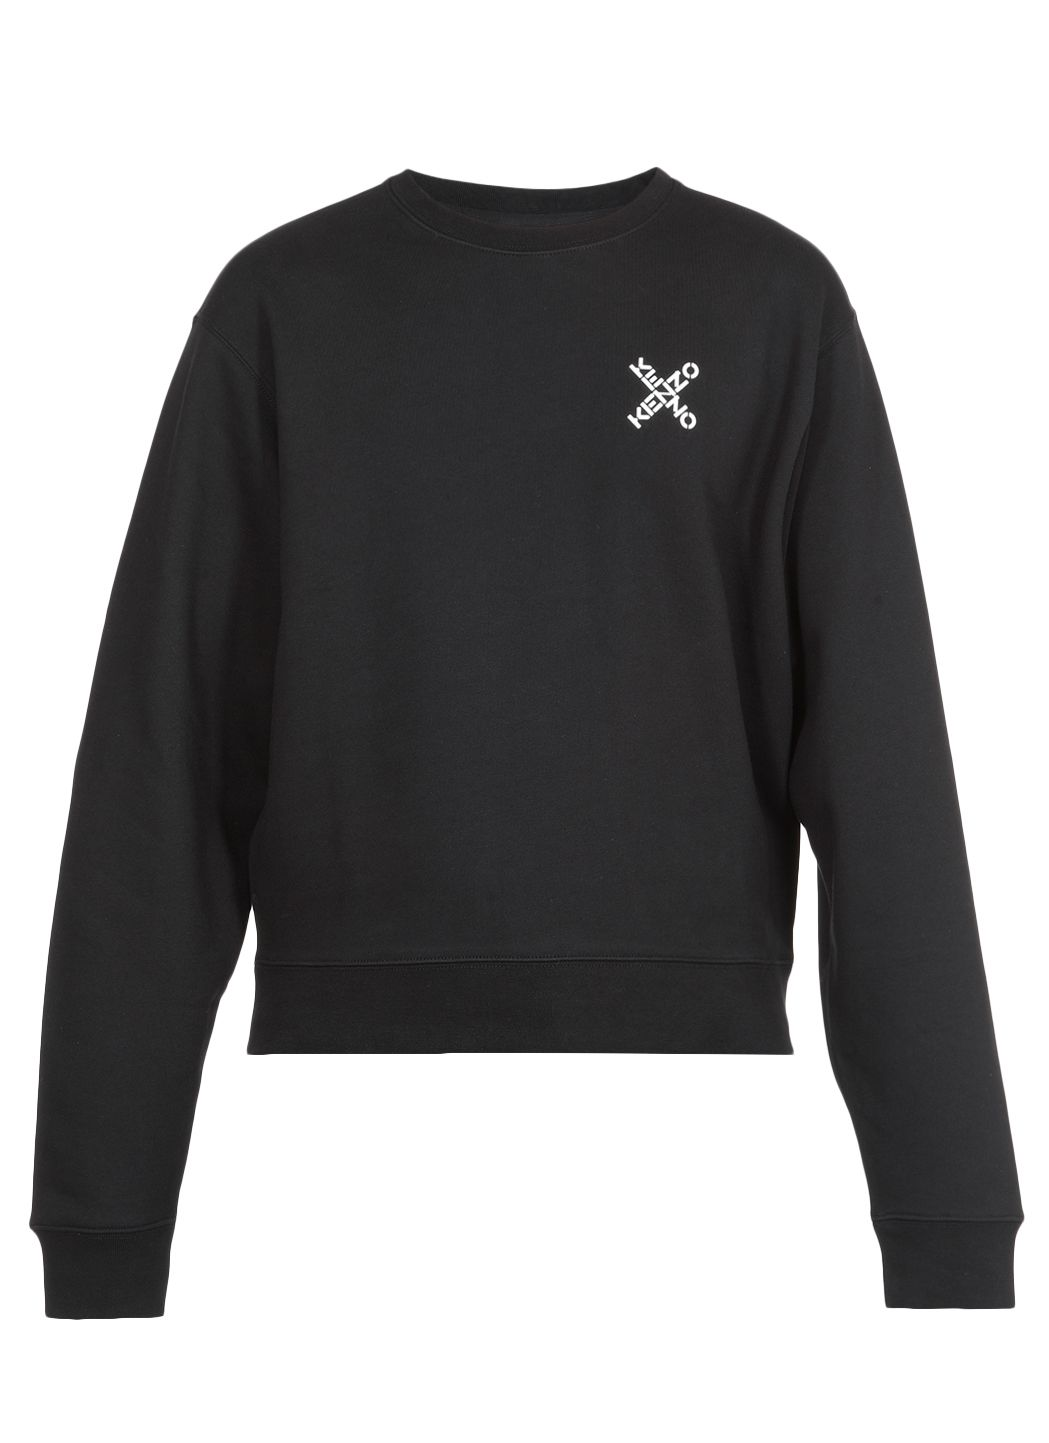 Cotton blend swearshirt with logo